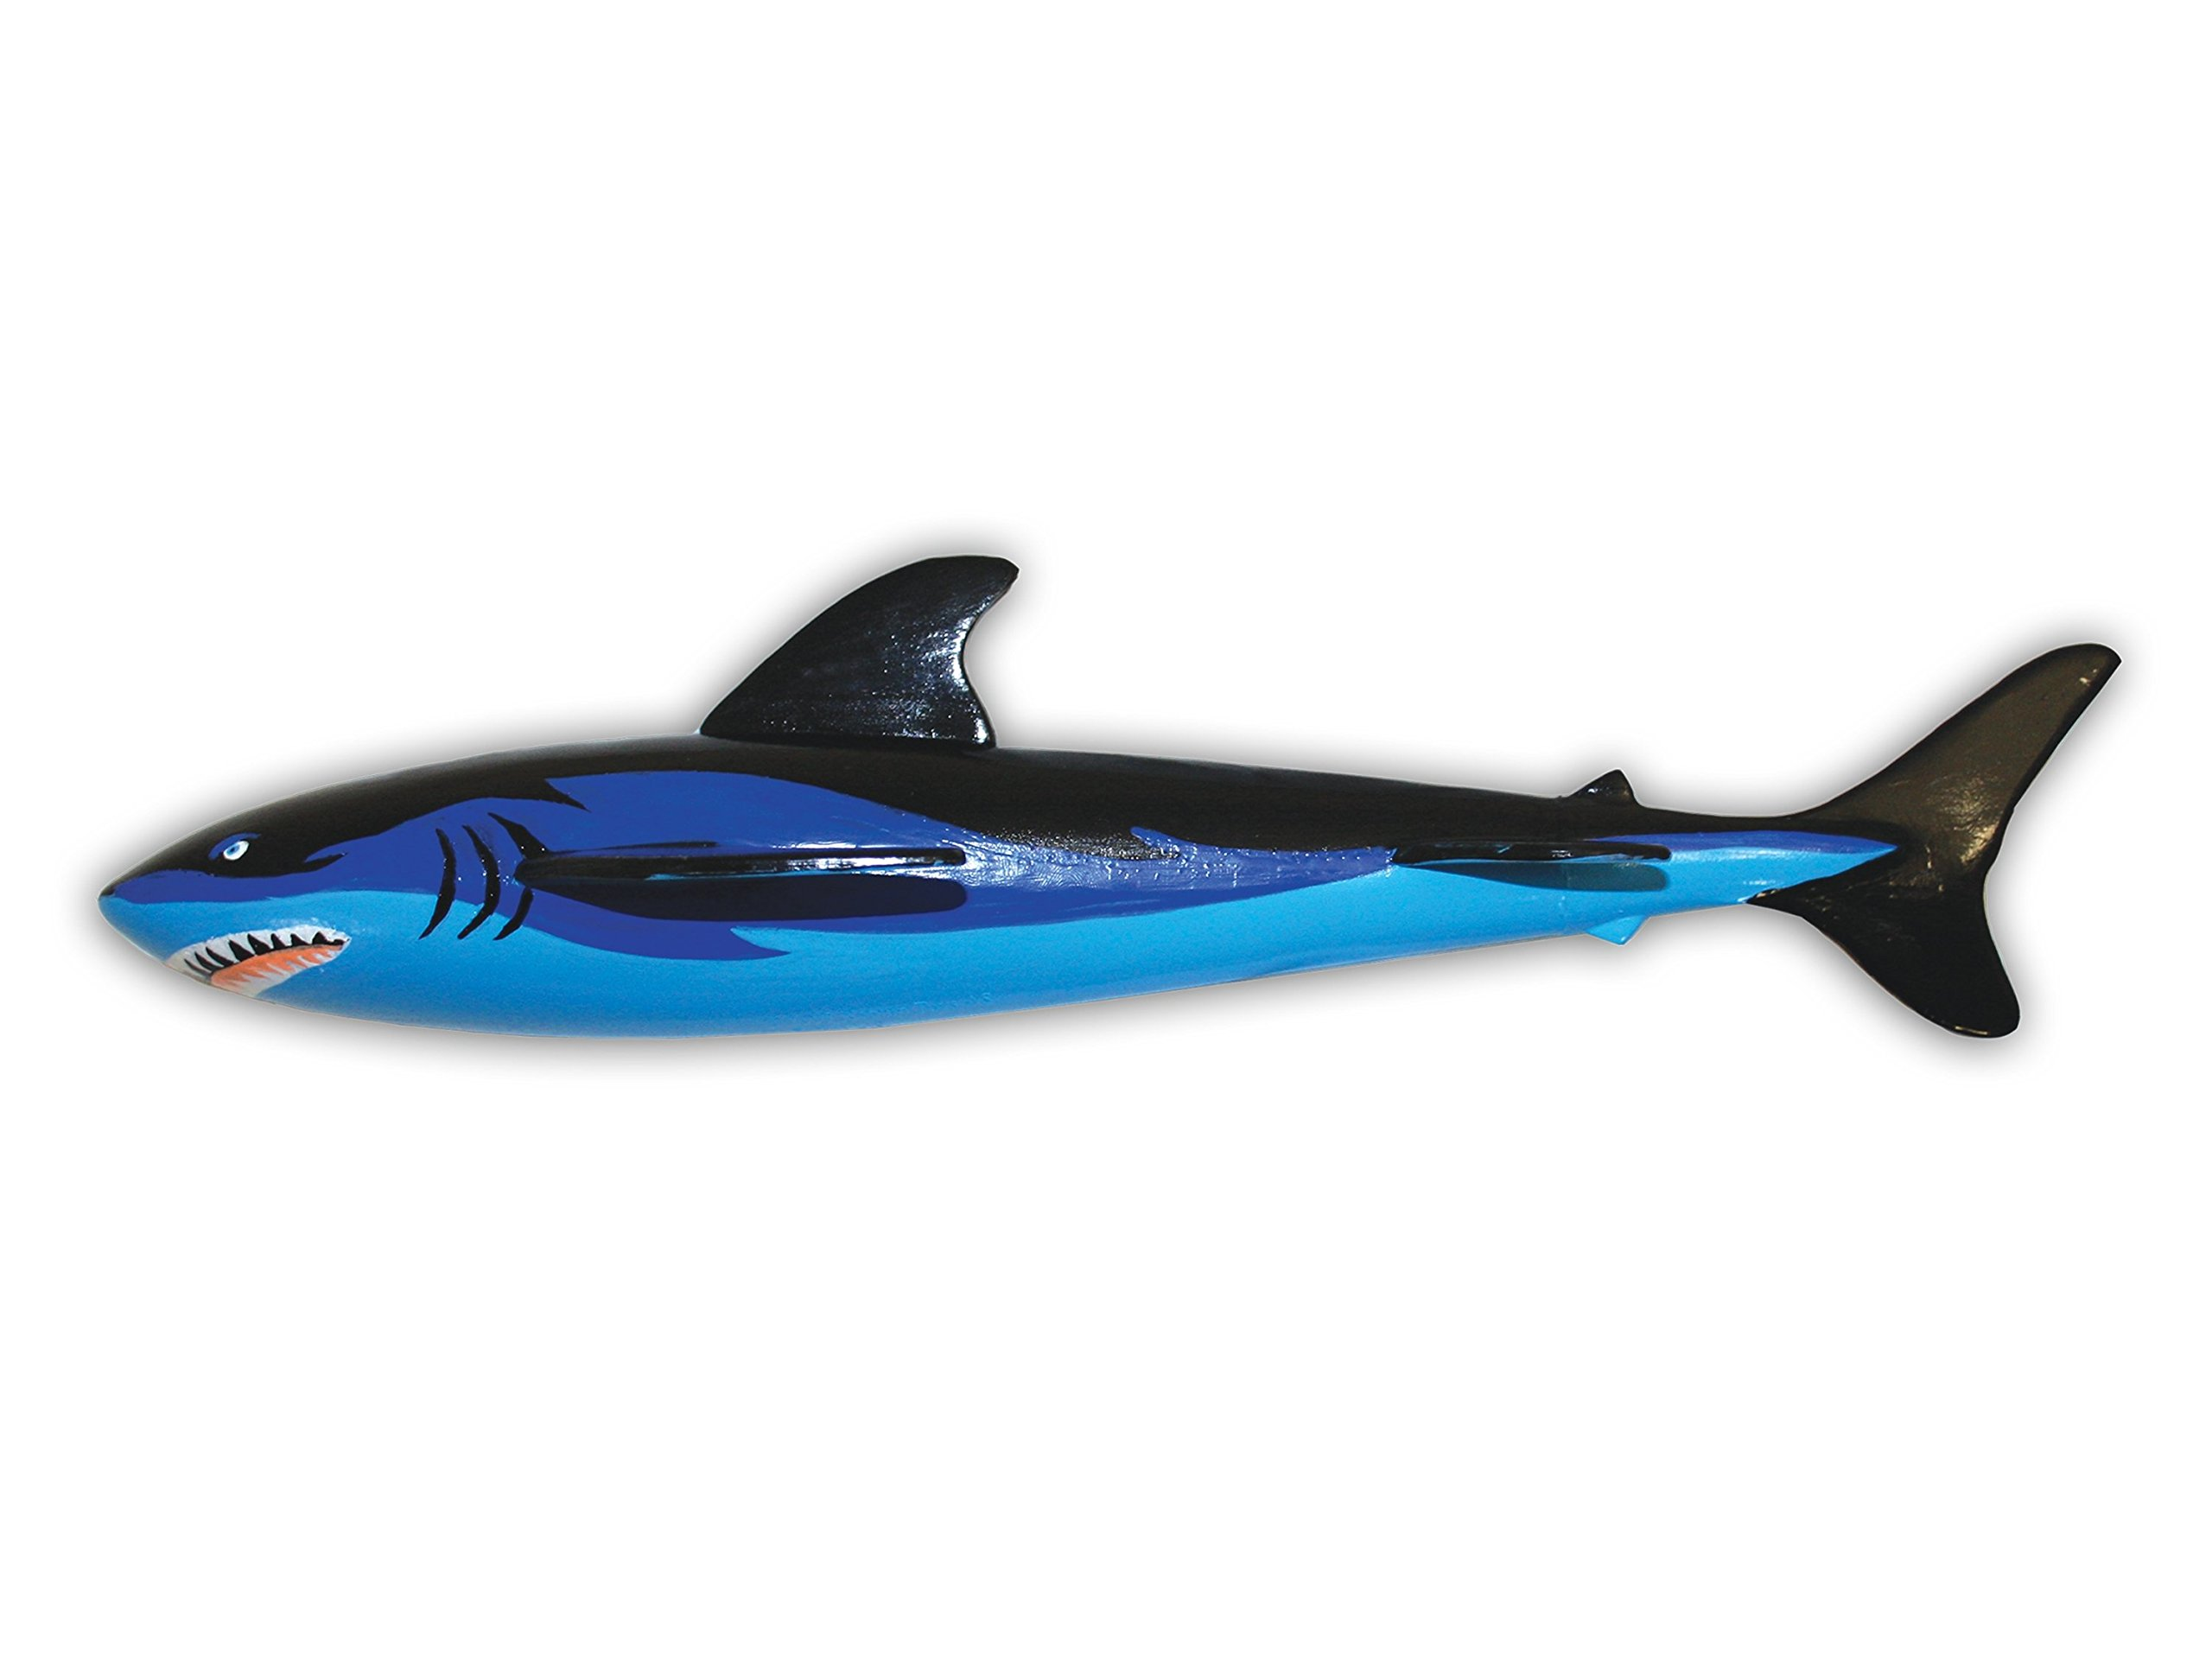 SwimWays Dive 'N Glide Shark Pool Toy by SwimWays (Image #1)